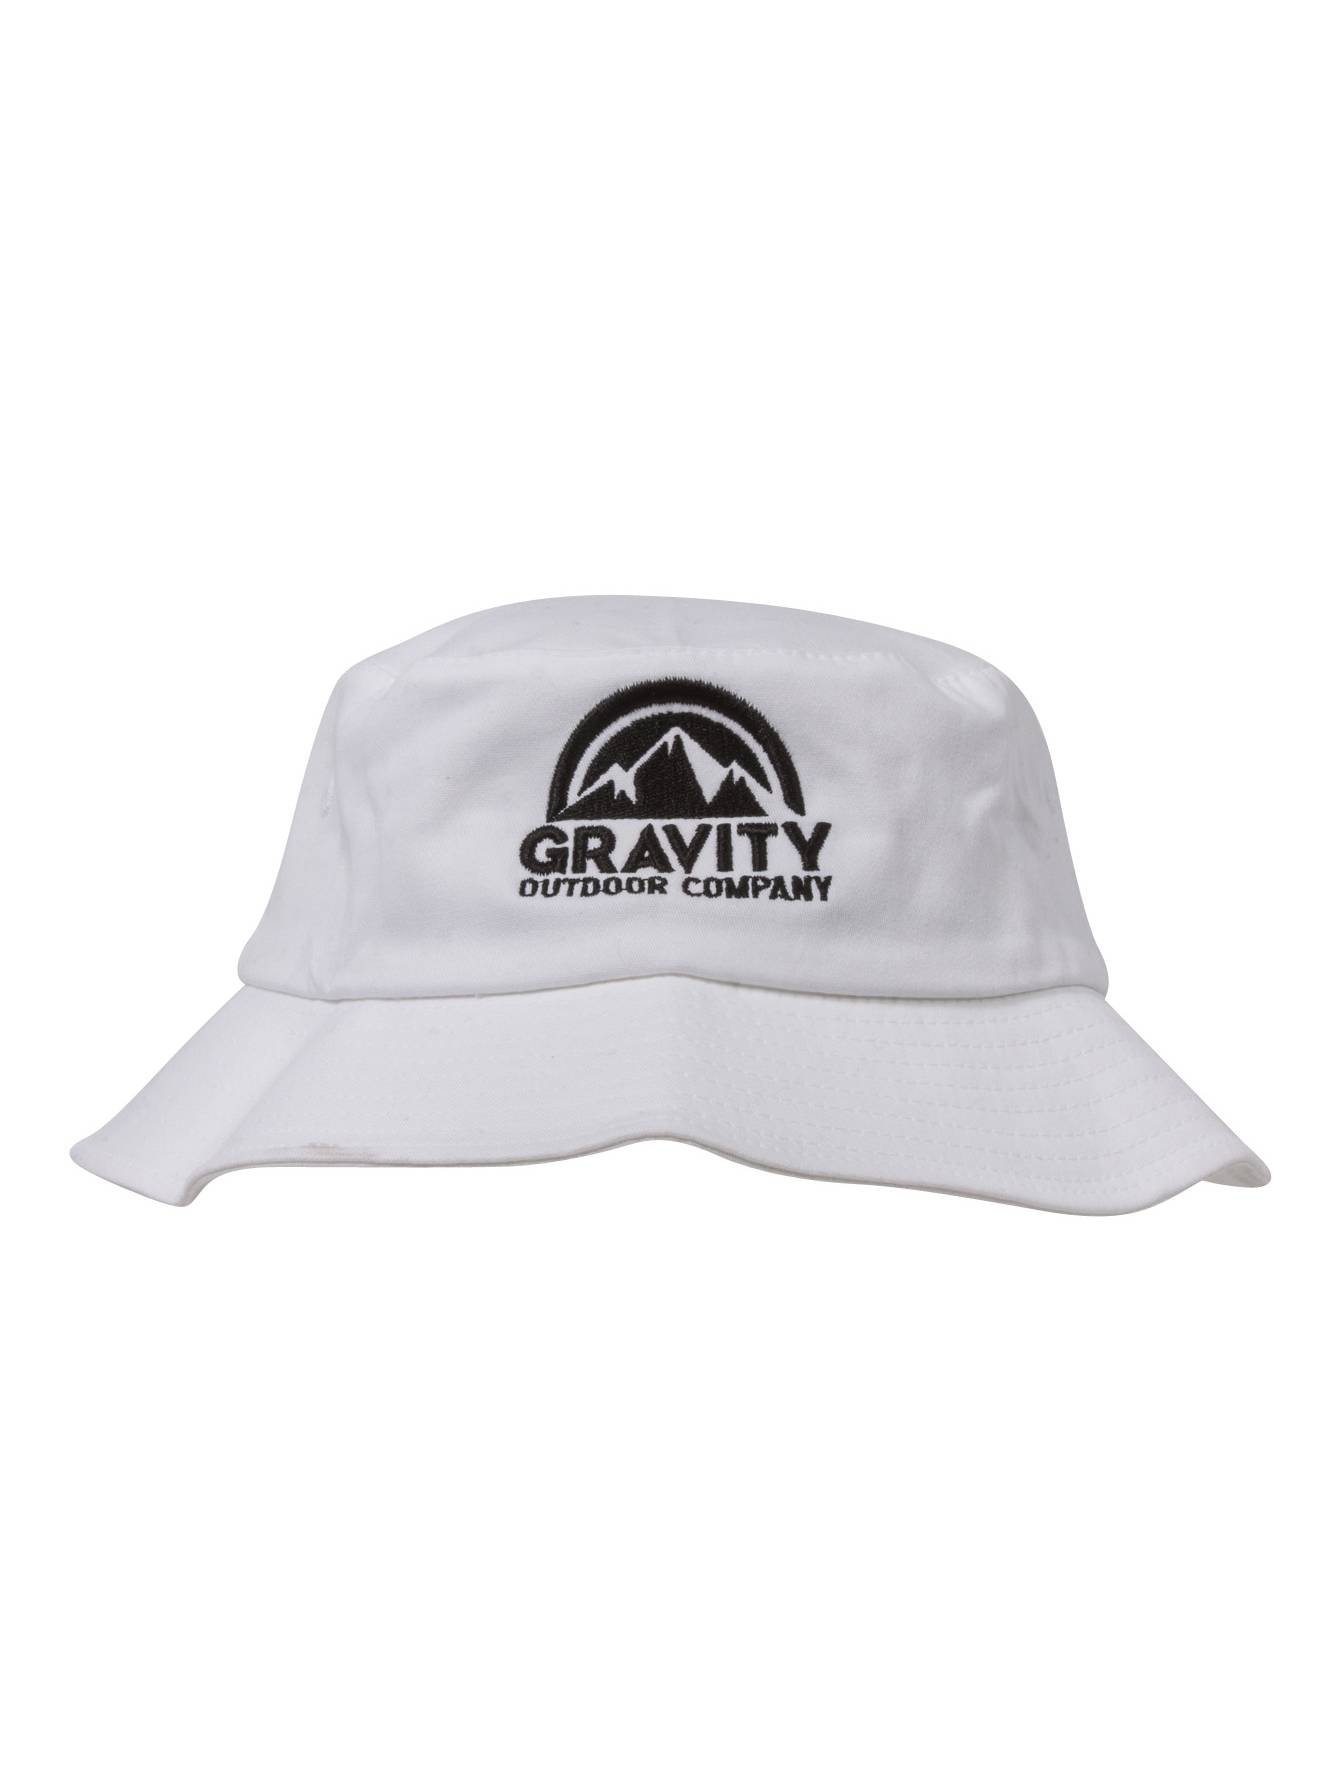 Gravity Outdoor Co. Explorers Bucket Hat - Navy White 028c74977f1